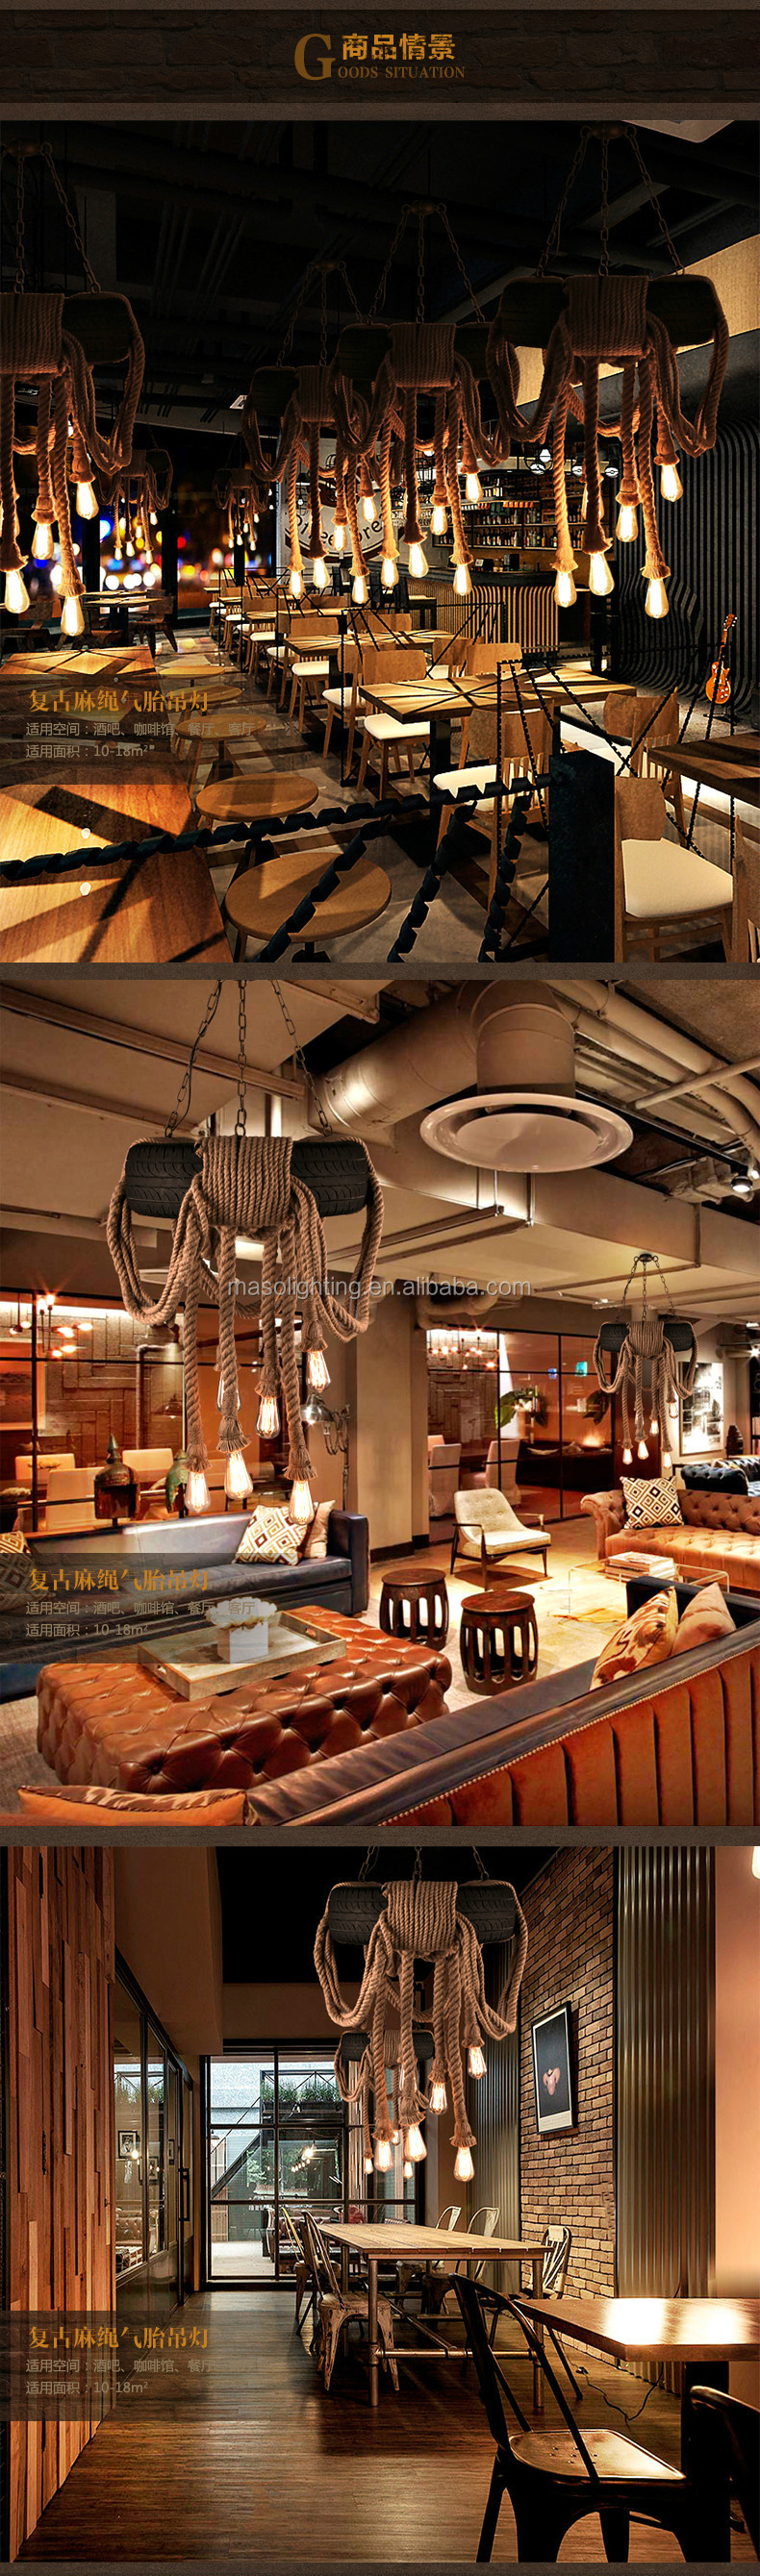 Rubber Loft Industrial Garage Tire shaped Chandelier Pendant Light Restaurant Bar American Style Retro Hemp Rope light Fixture